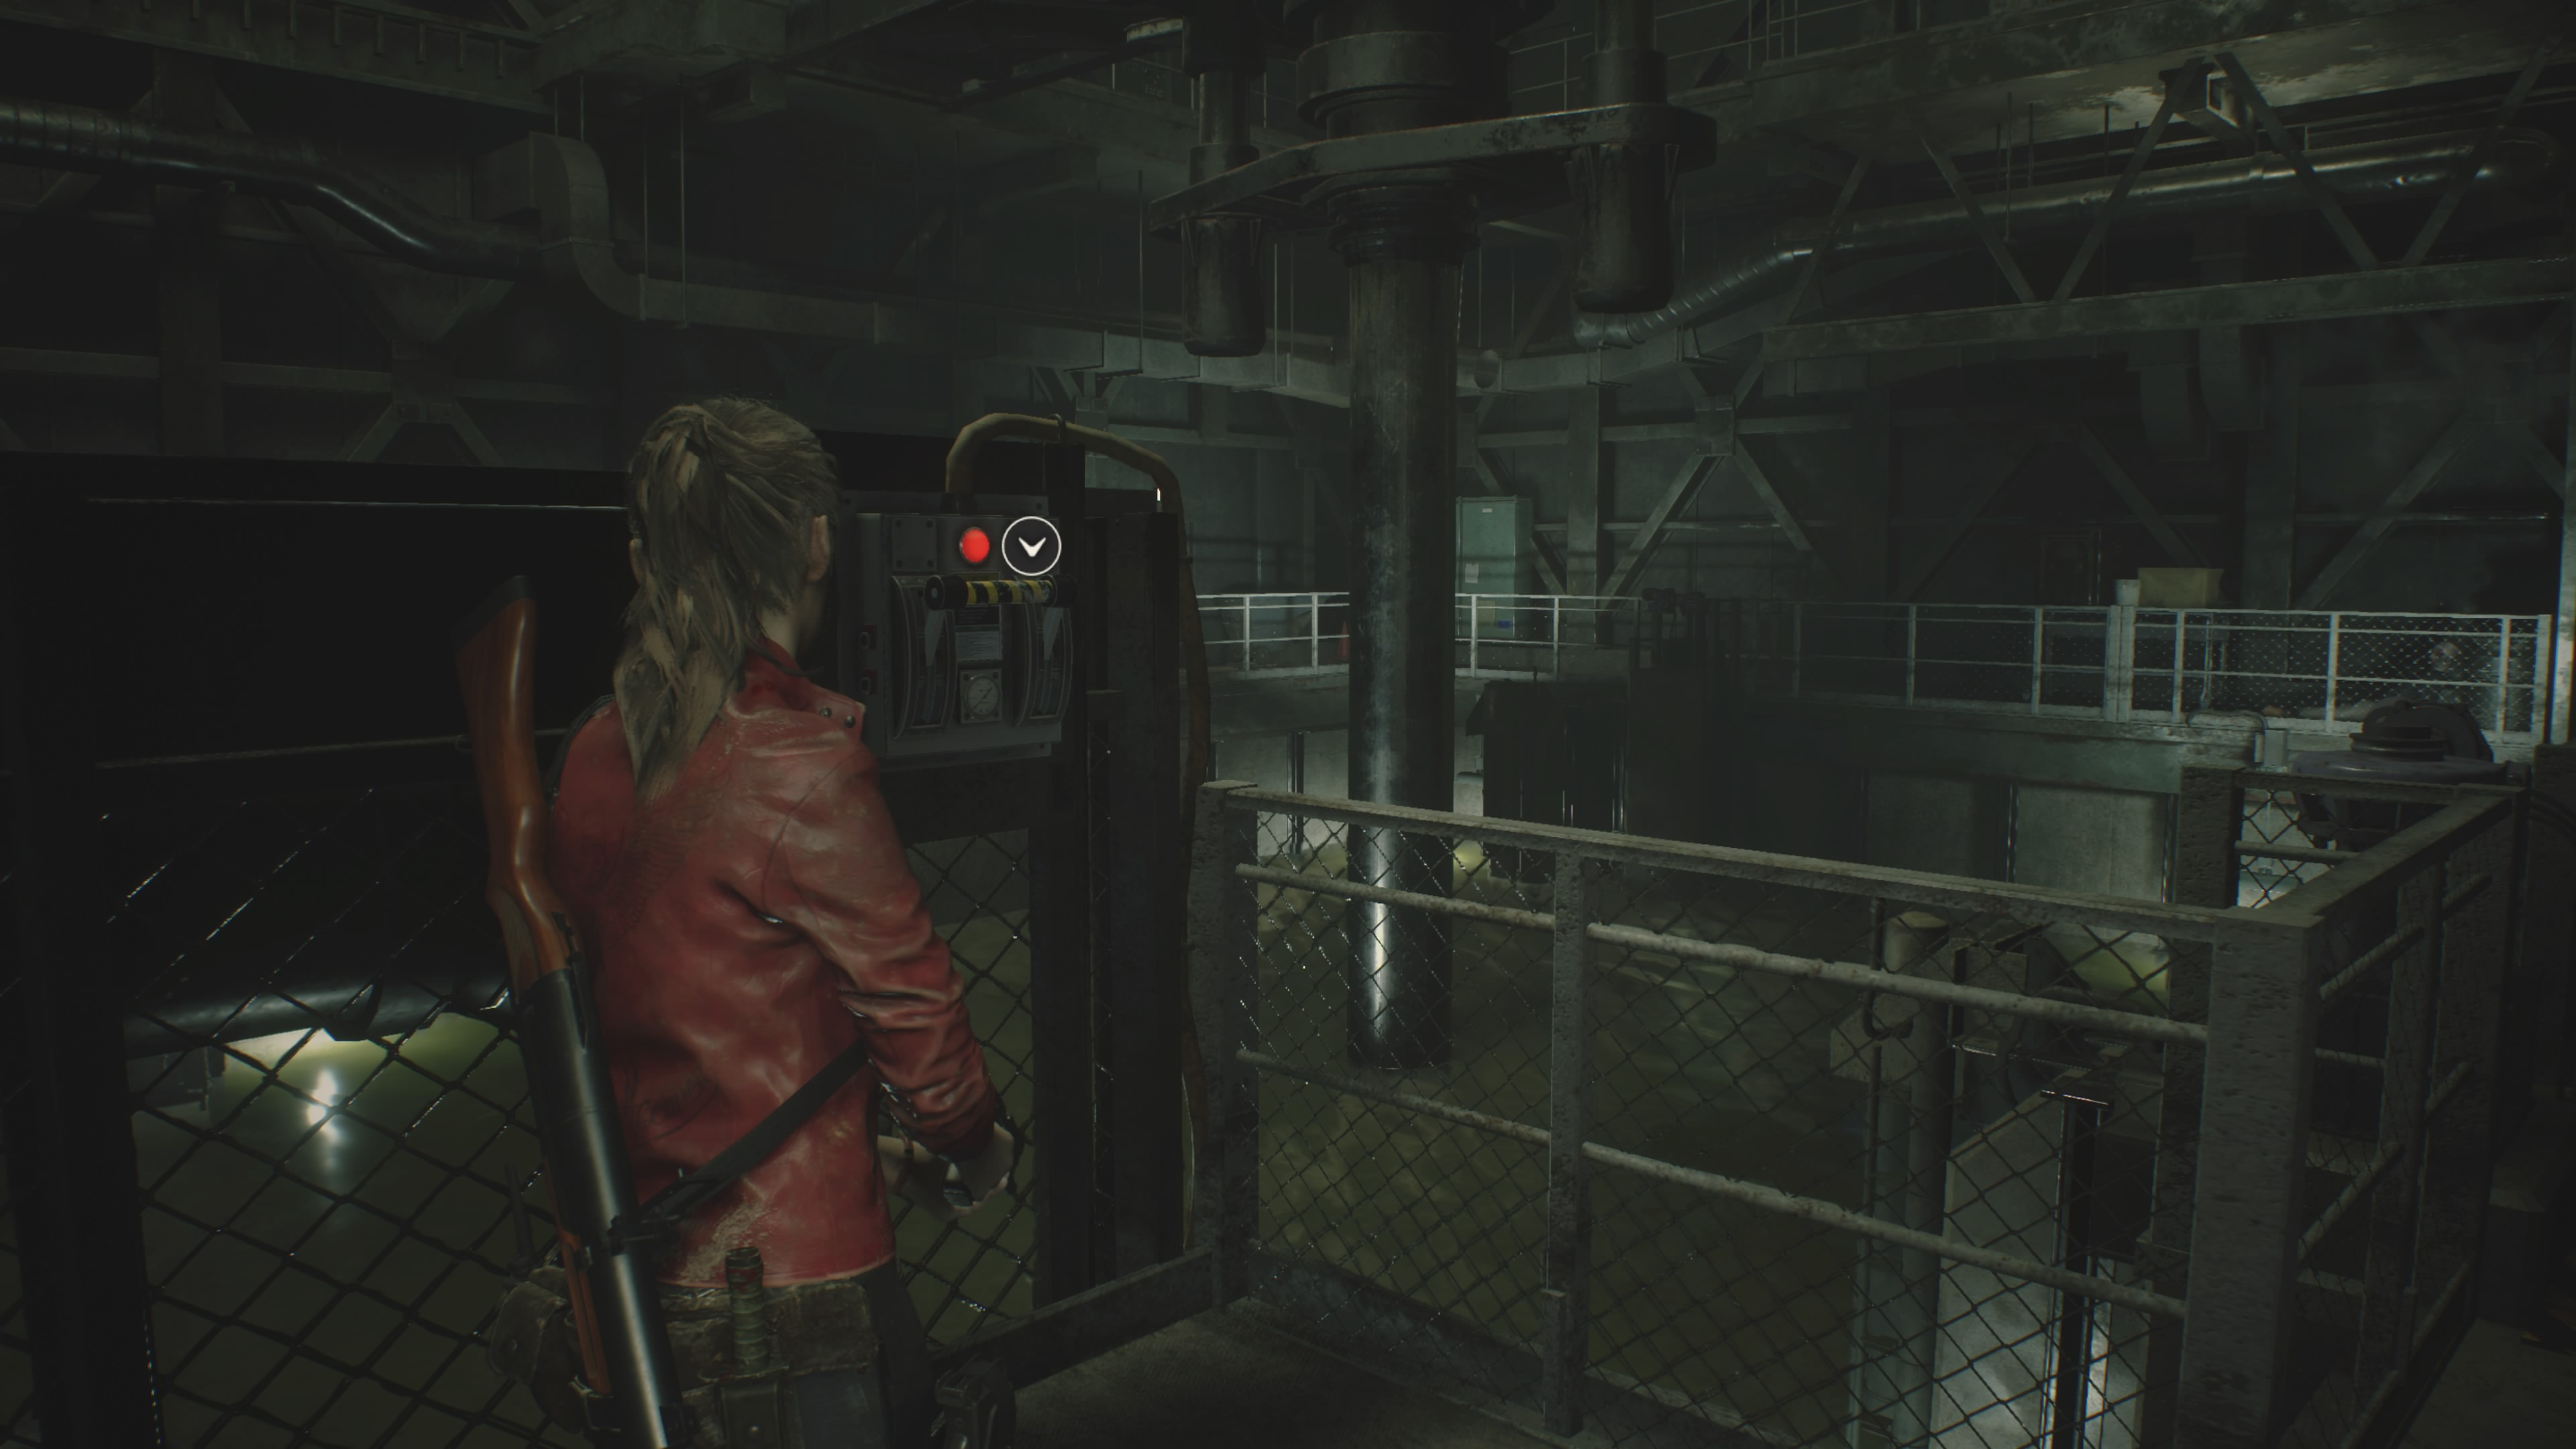 Resident Evil 2 Chess Puzzle Walkthrough - How to Find the